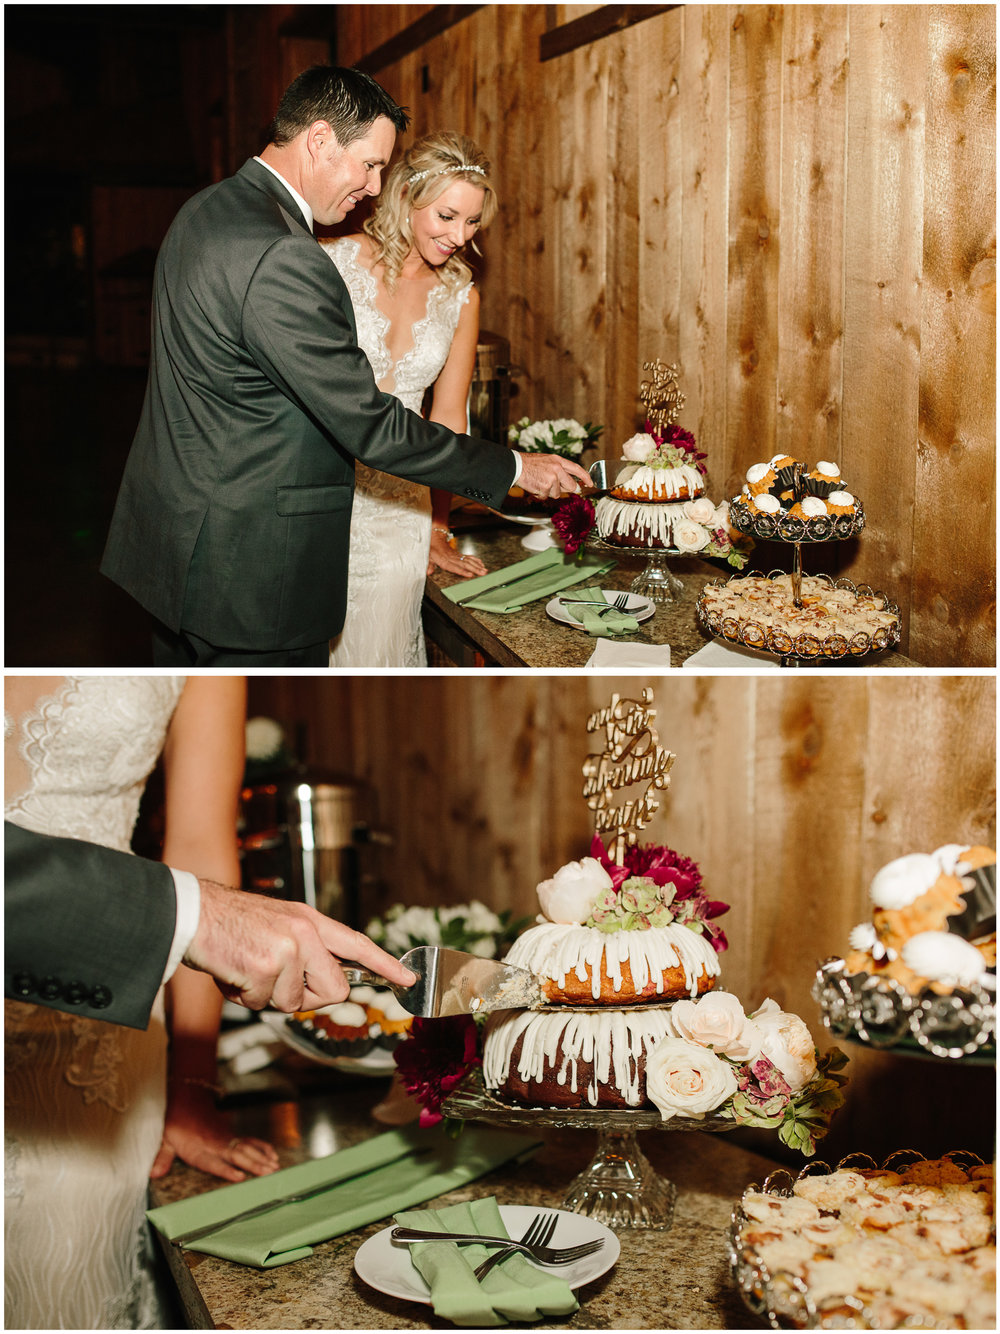 spruce_mountain_ranch_wedding_72.jpg